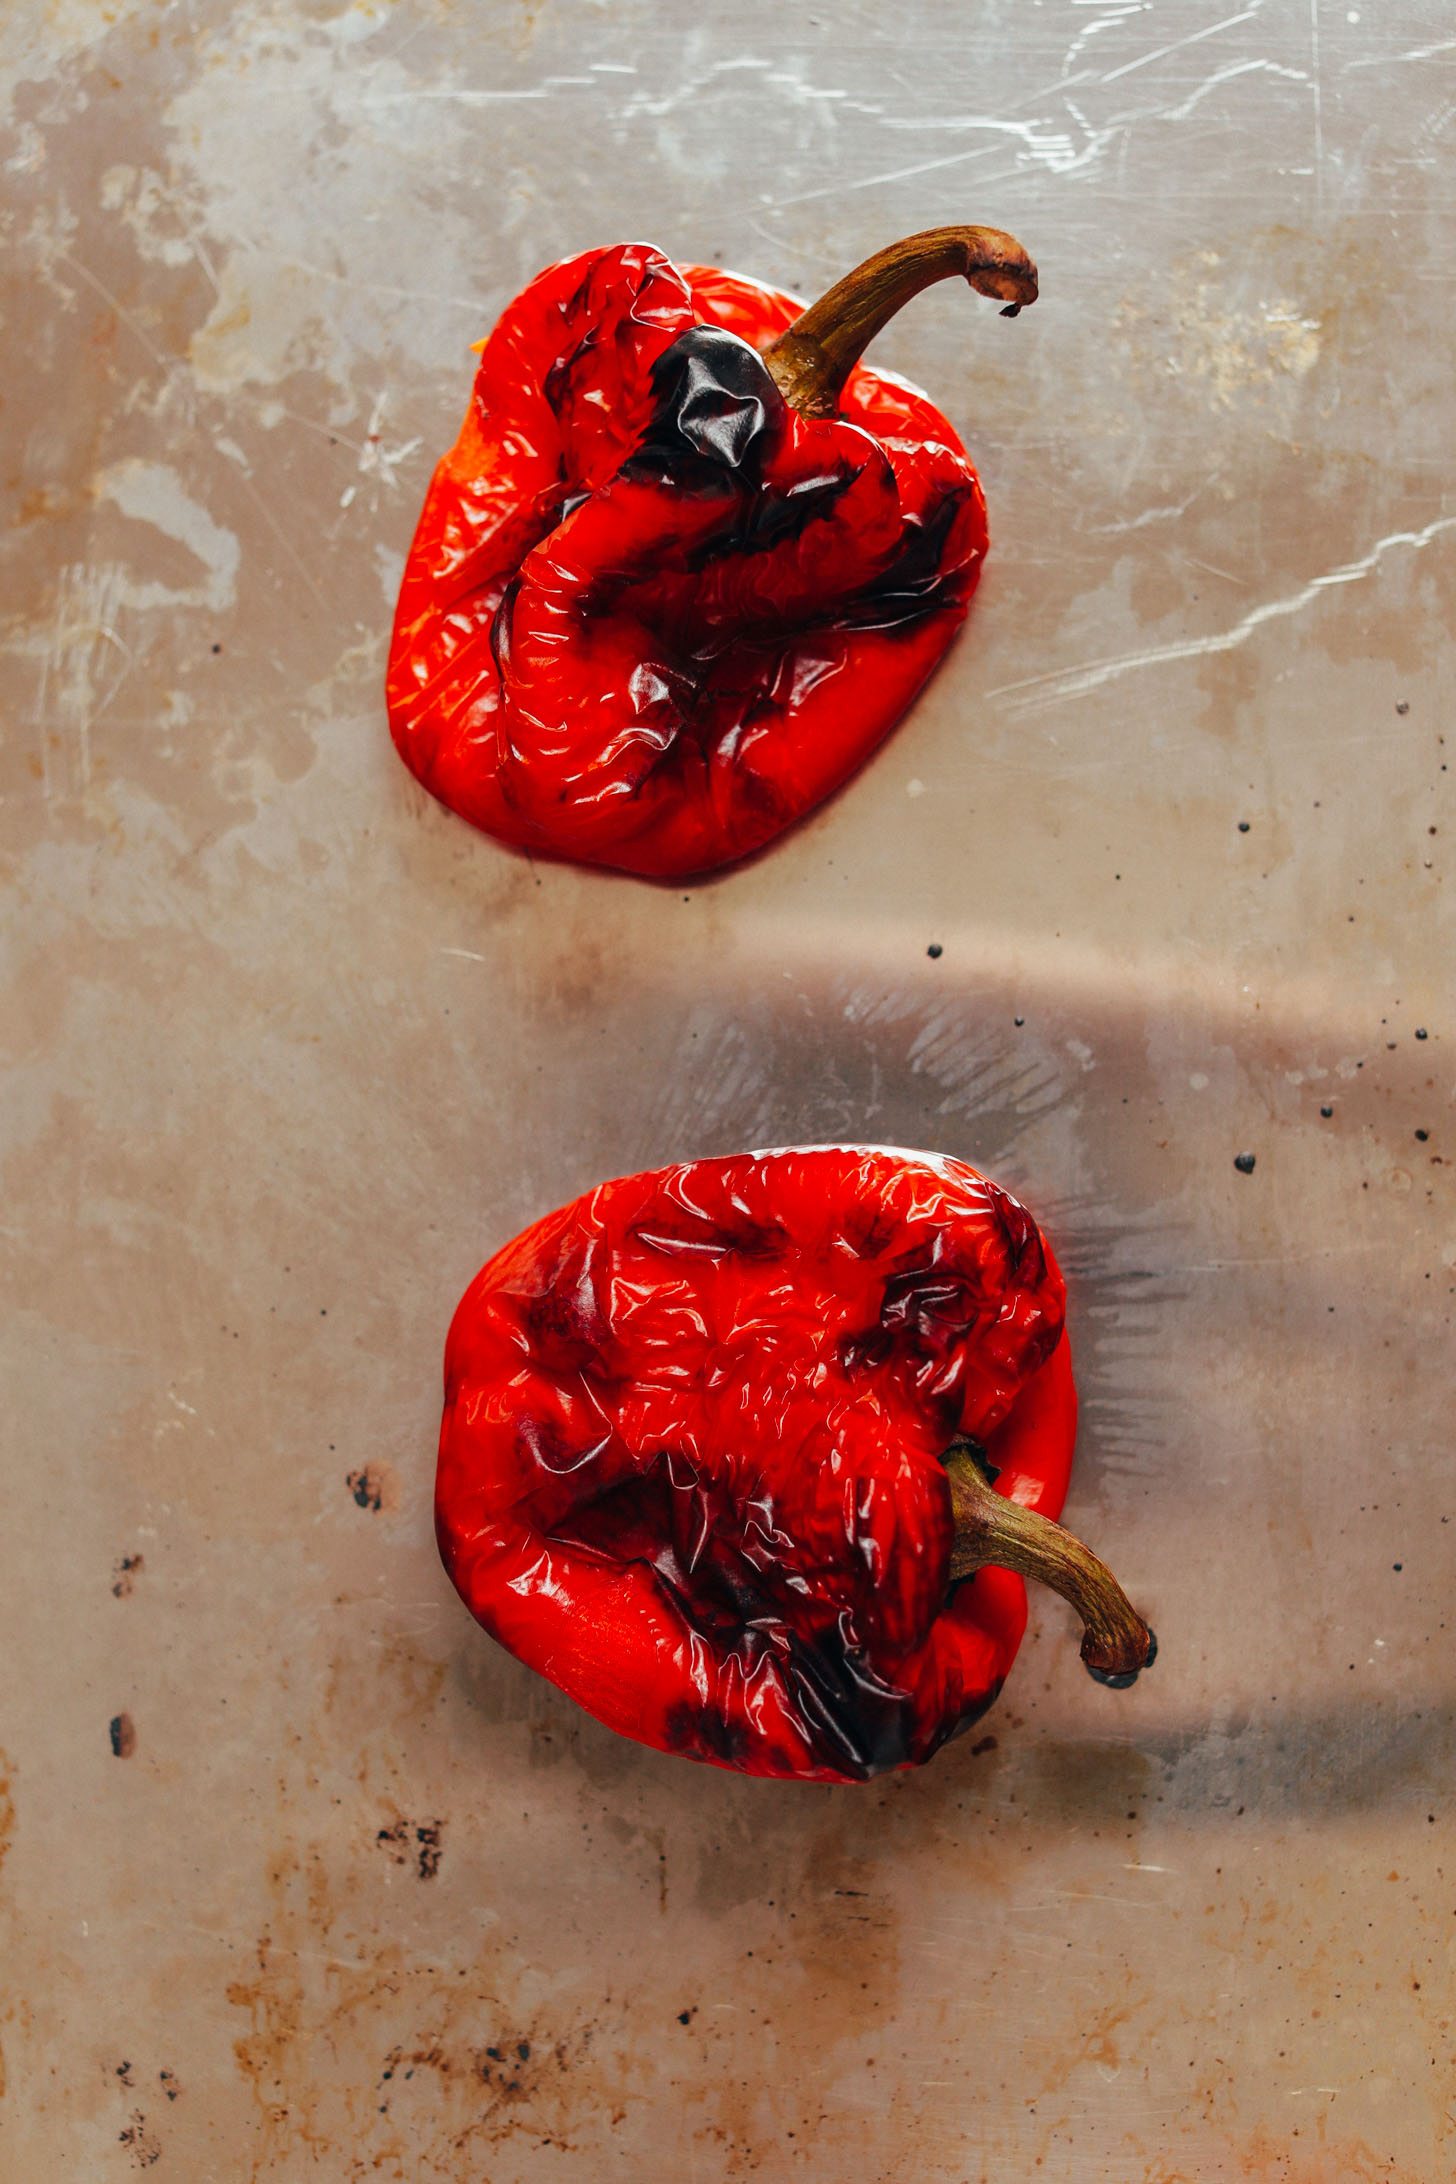 Baking sheet with two freshly roasted red bell peppers for making Romesco Sauce